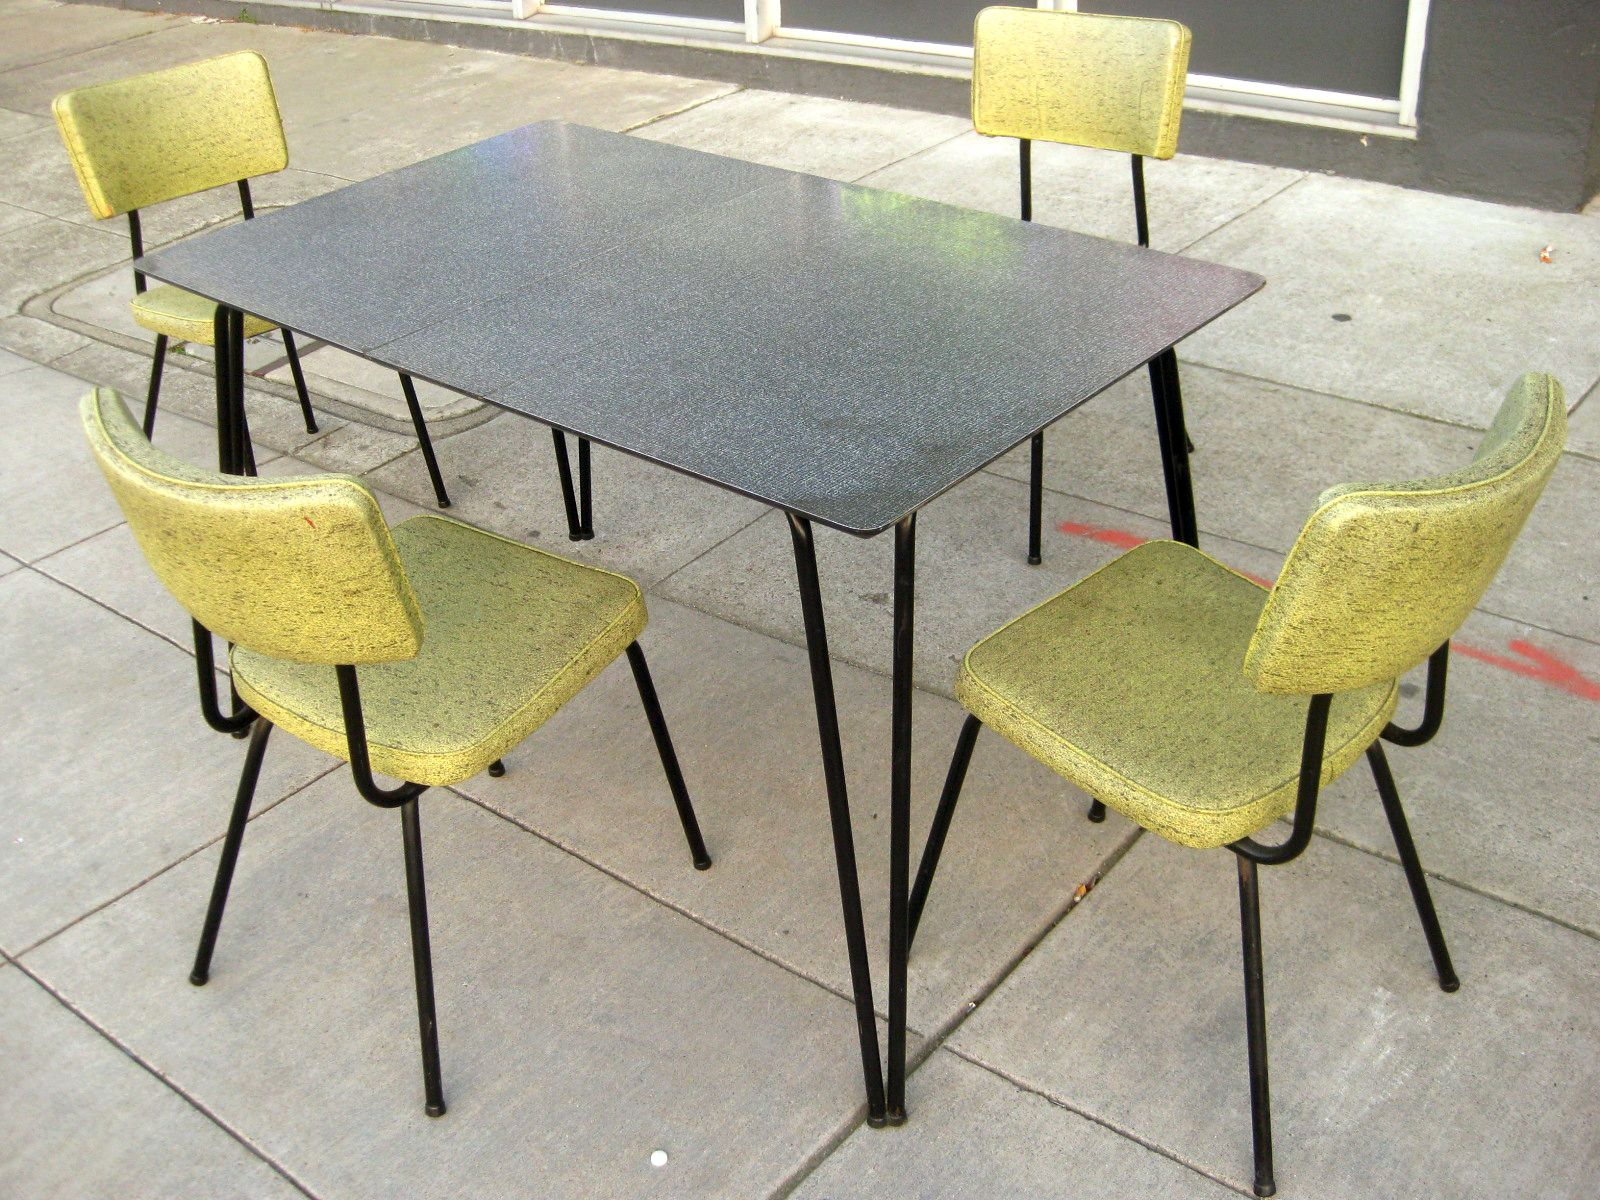 uhuru furniture  u0026 collectibles  sold   1960s kitchen table   chairs    125 uhuru furniture  u0026 collectibles  sold   1960s kitchen table        rh   pinterest com